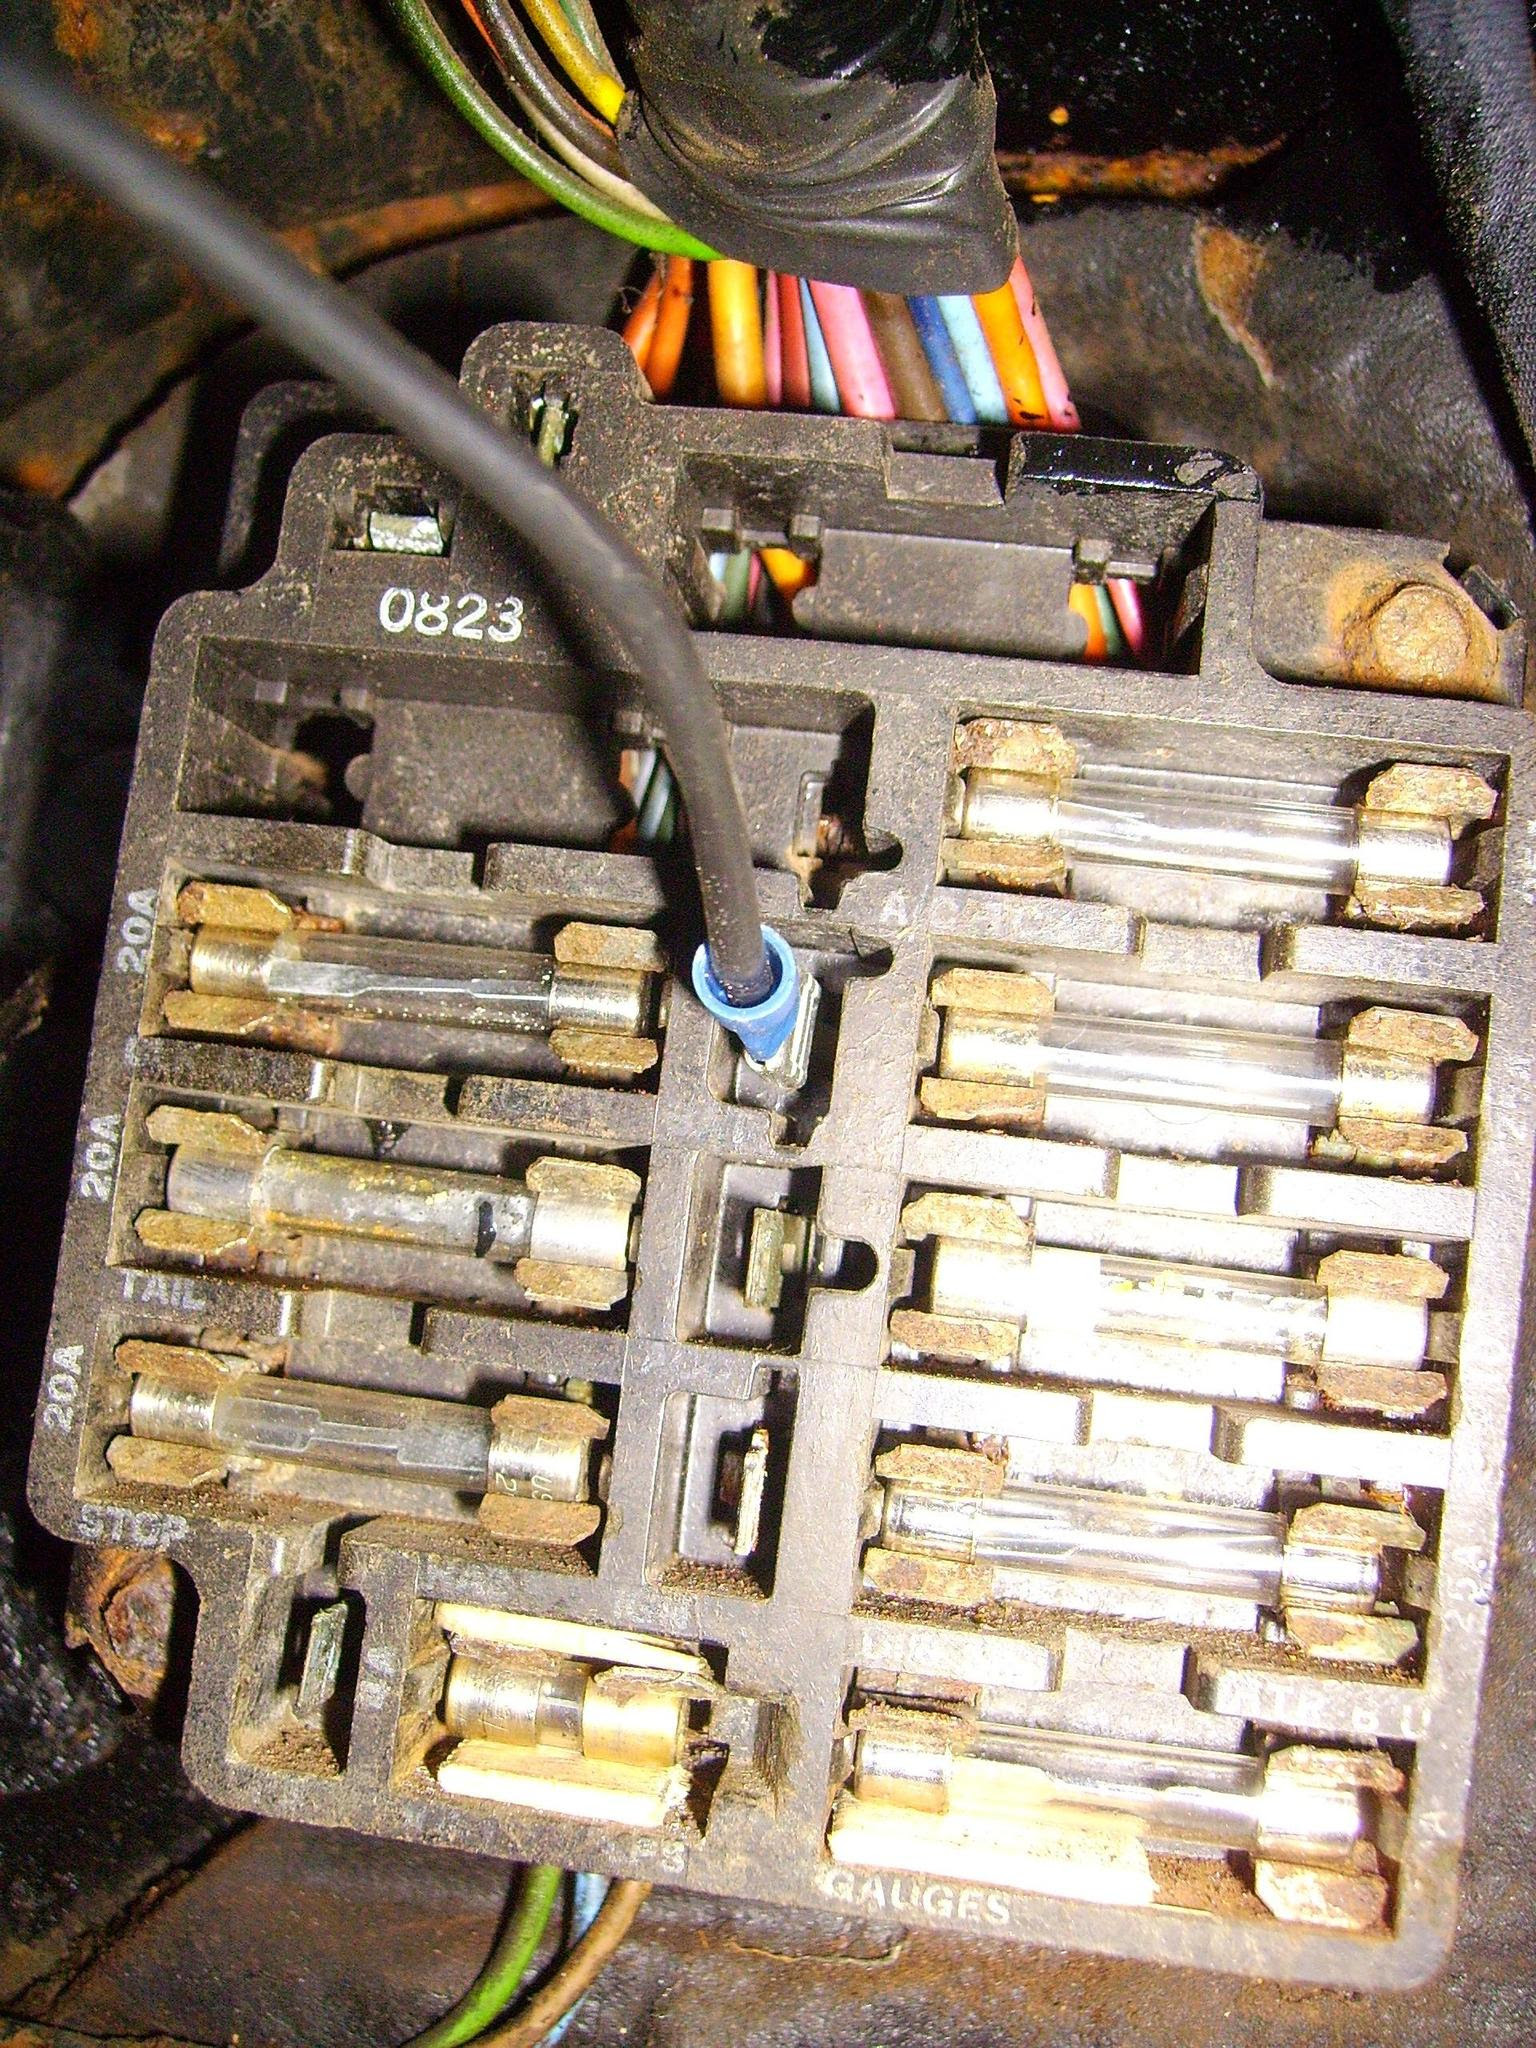 039 70 Chevelle Ss Fuse Box Wiring Diagram FULL Version HD Quality Wiring  Diagram - LOUV-DIAGRAM.CHANGEZVOTREVIE.FRDiagram Database - changezvotrevie.fr